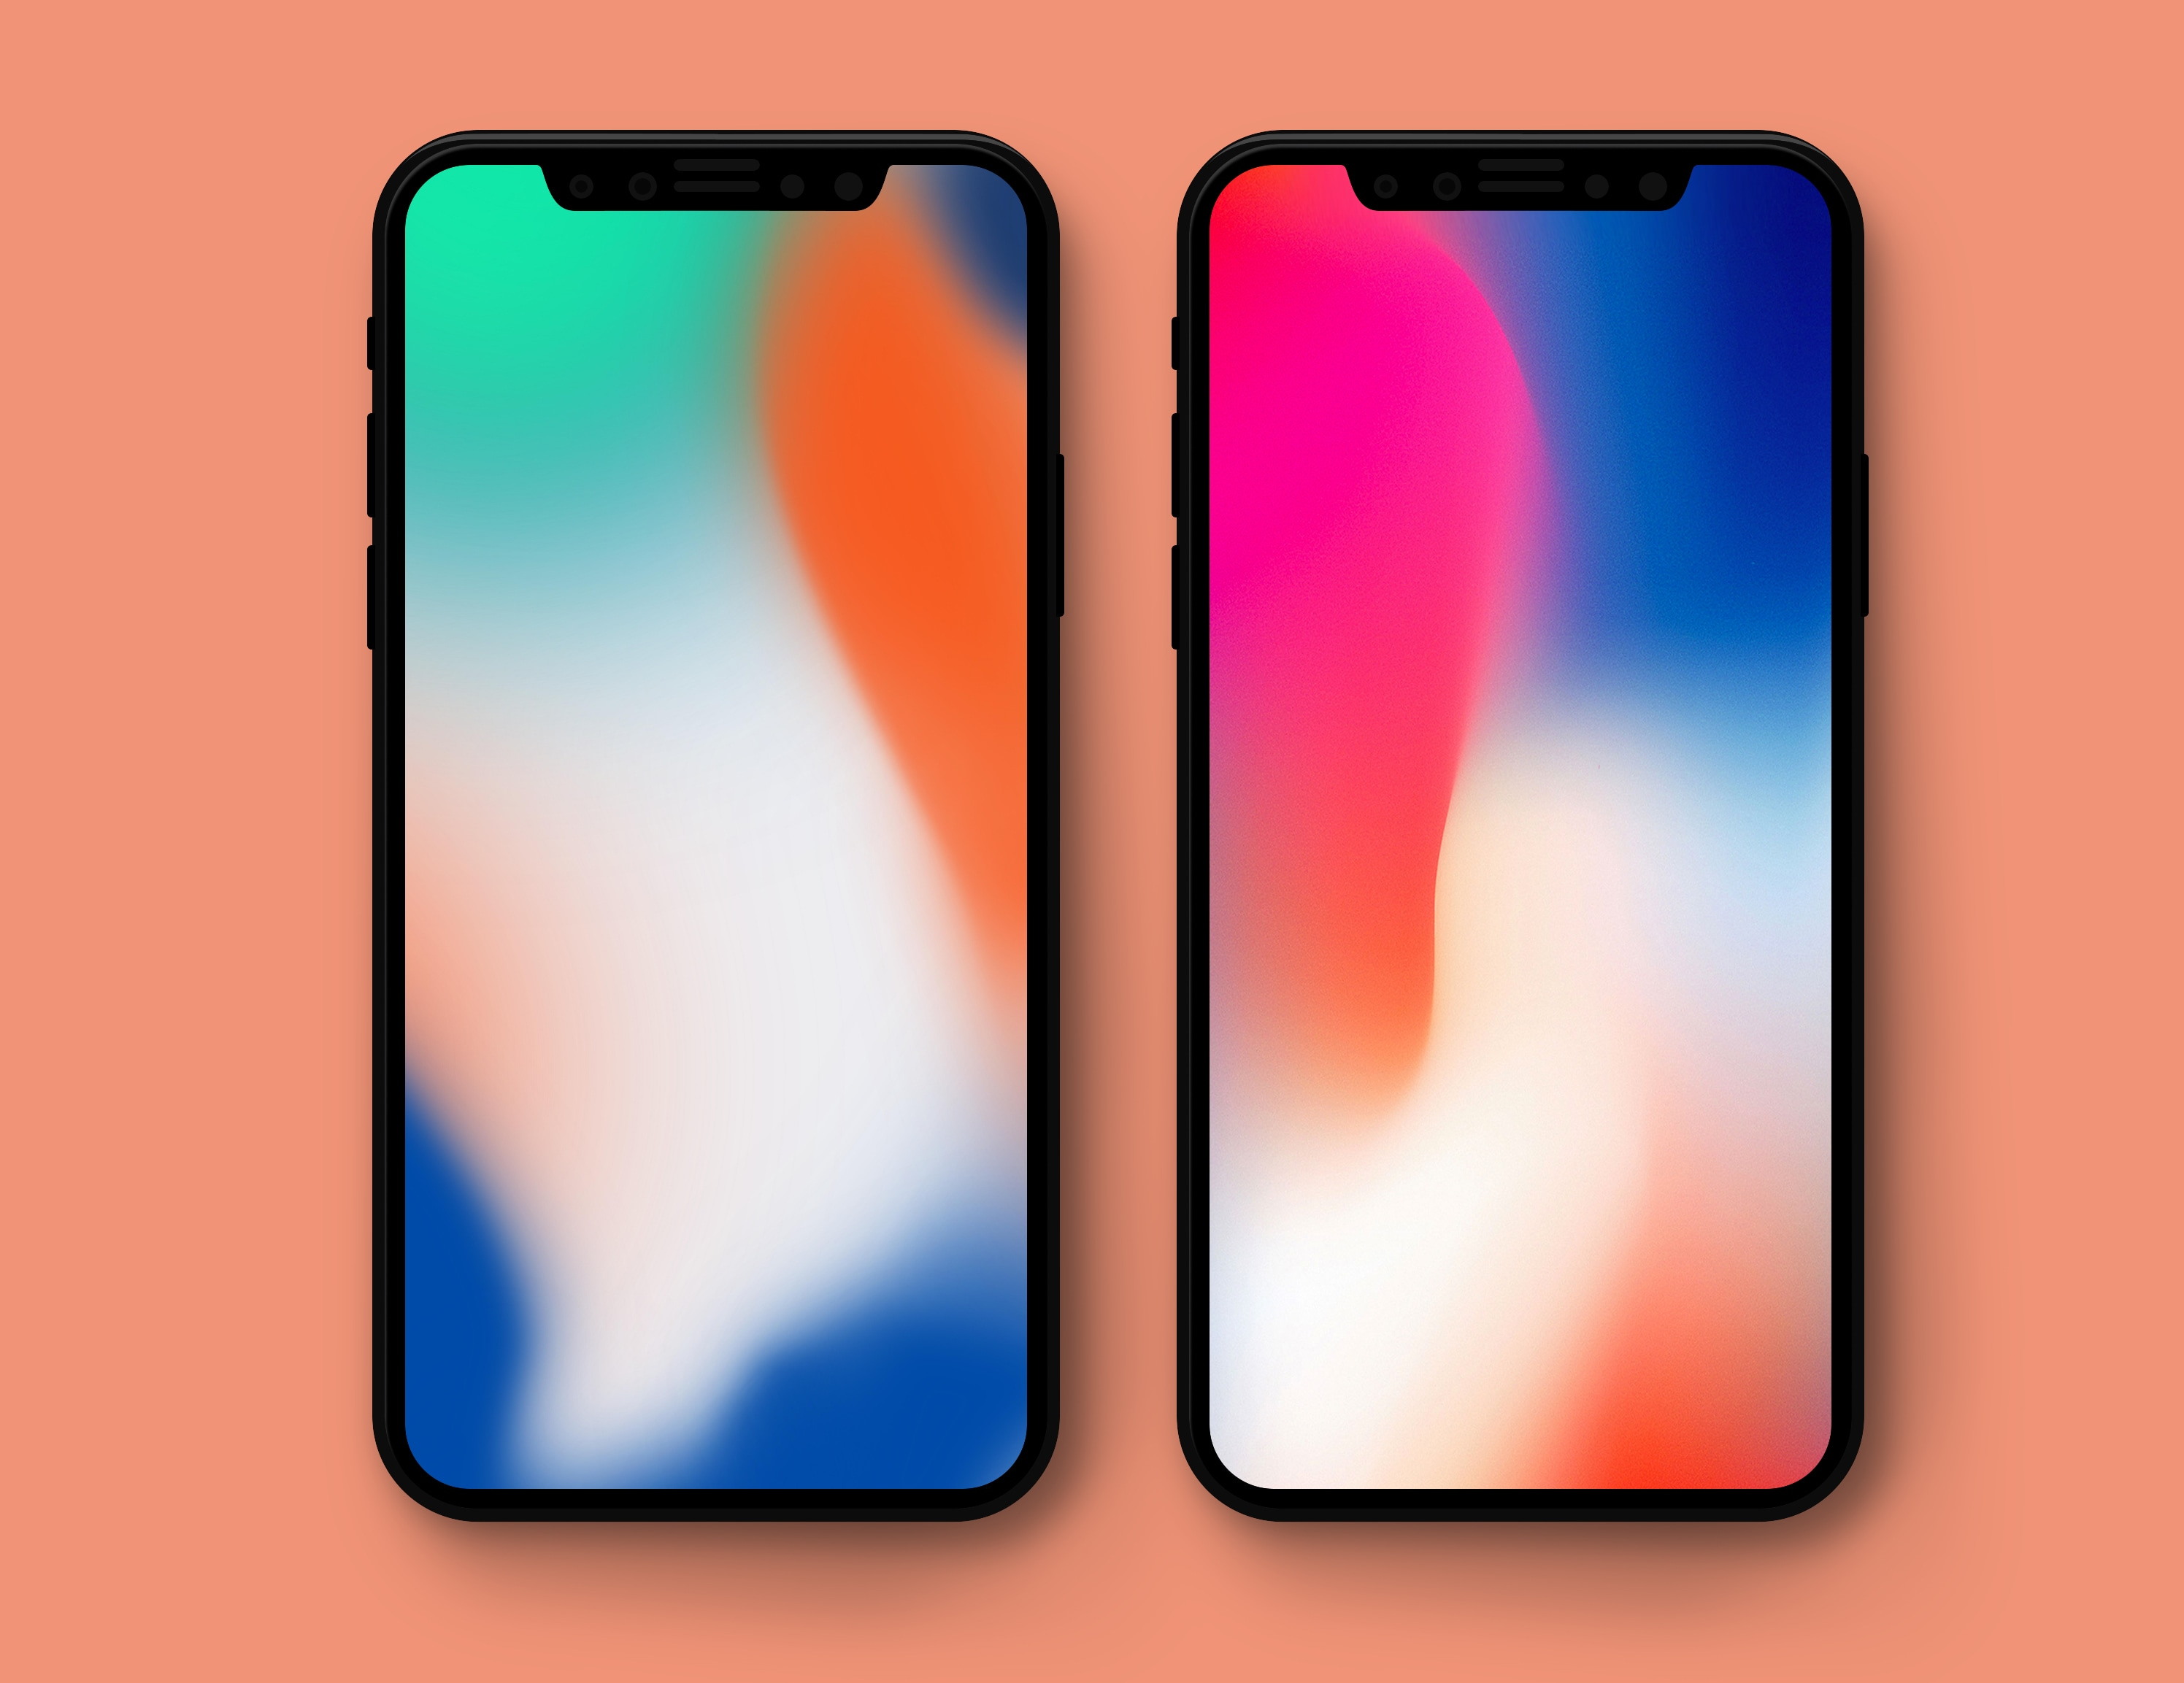 iPhone X flagship advertising wallpapers 2992x2306